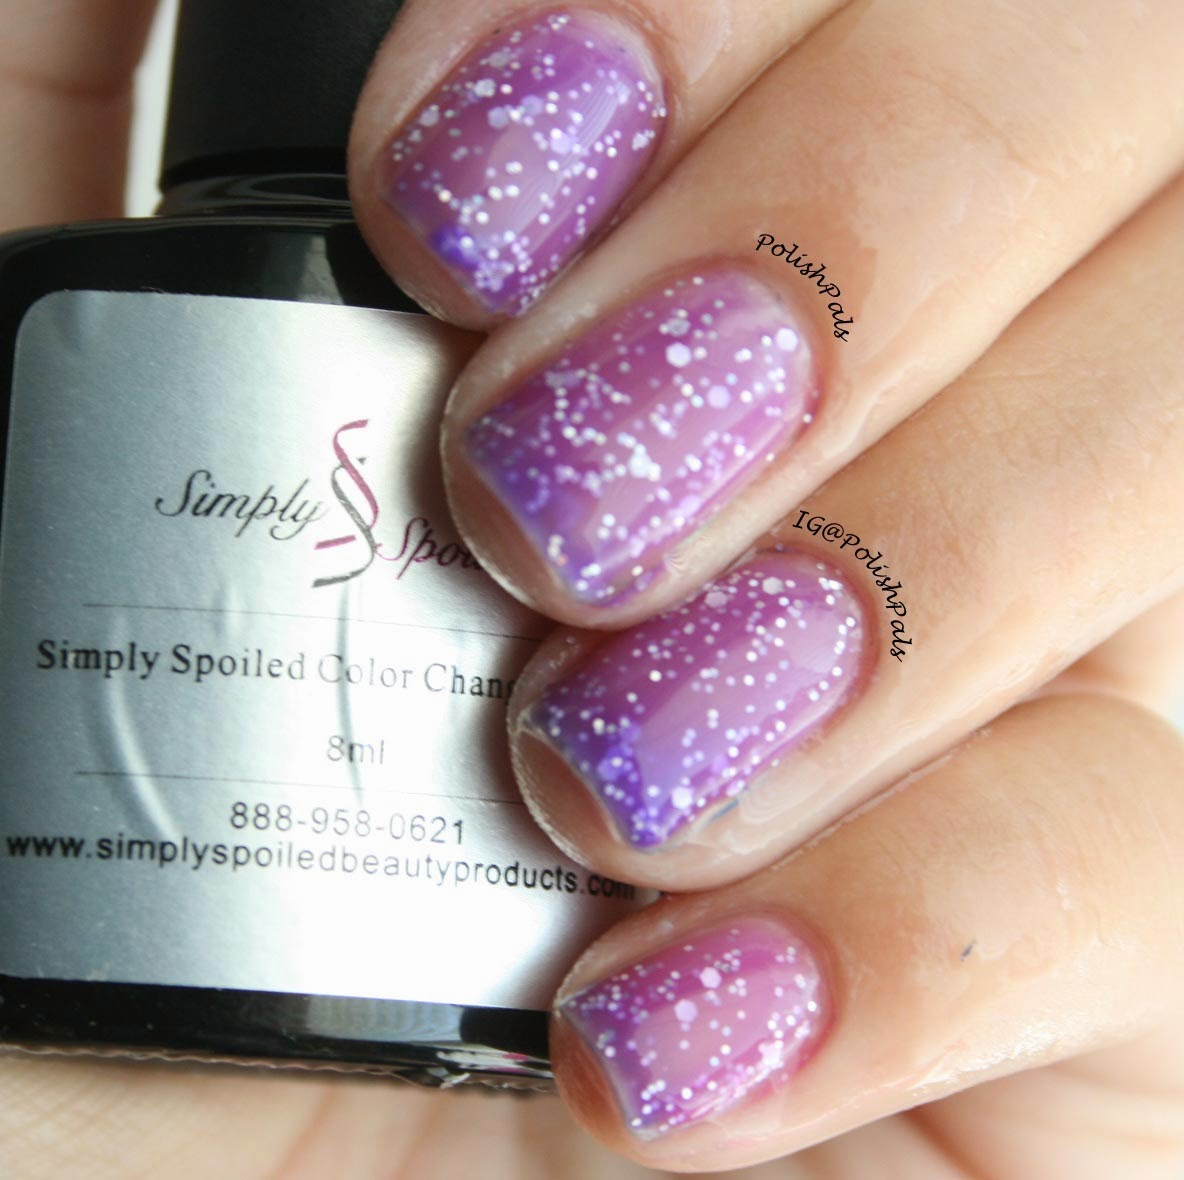 polish pals: color changing gel polishsimply spoiled review